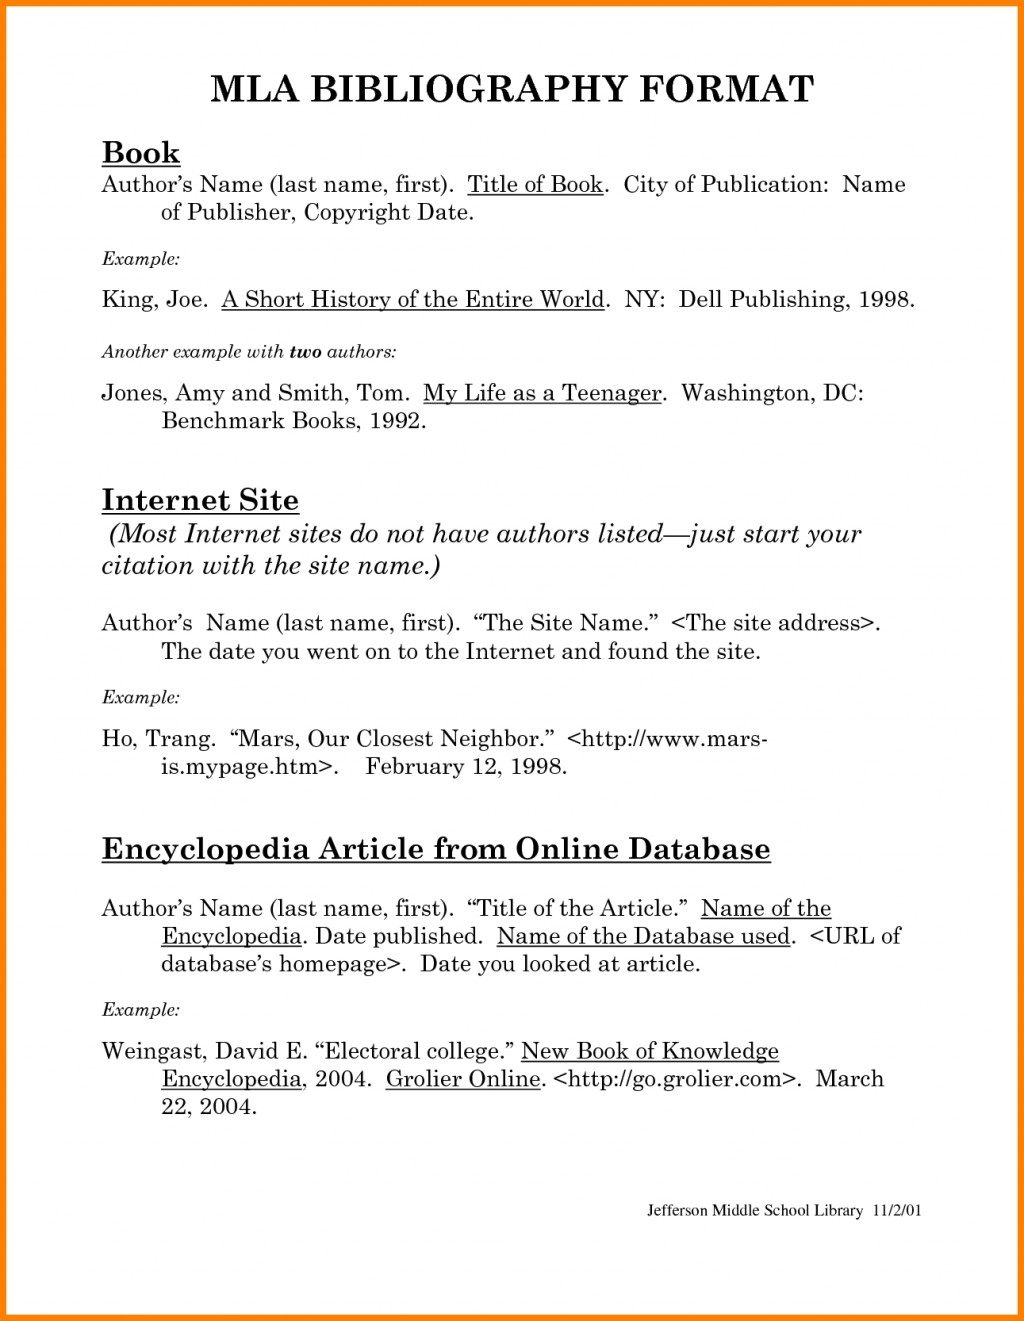 014 Mla Works Cited Citation Example Inspirational Format Website Anthonydeaton With Research Unusual Large